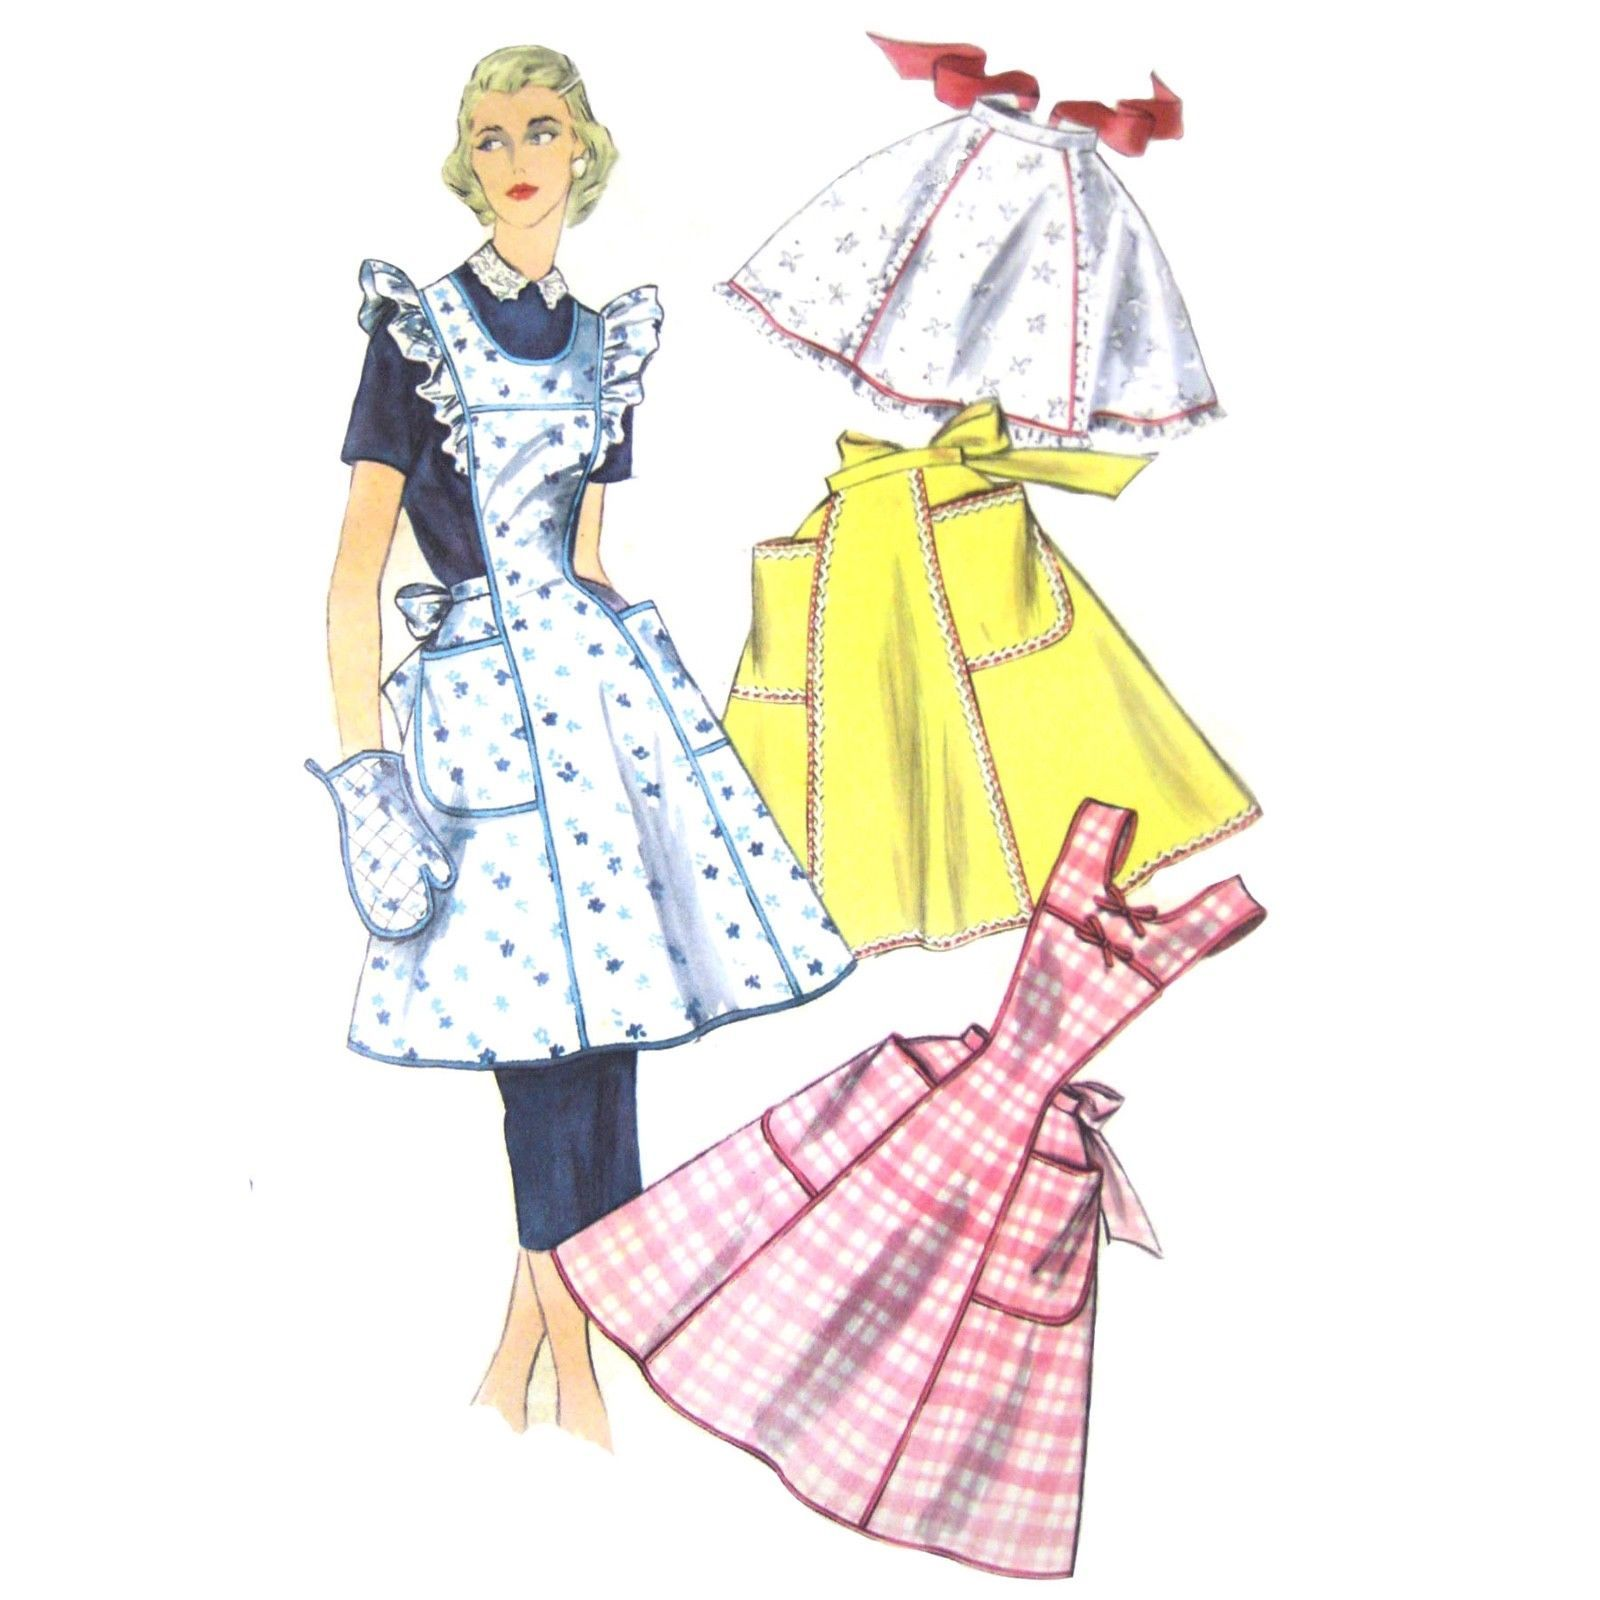 Simplicity 1955 Sewing Pattern (1950s): 4 listings